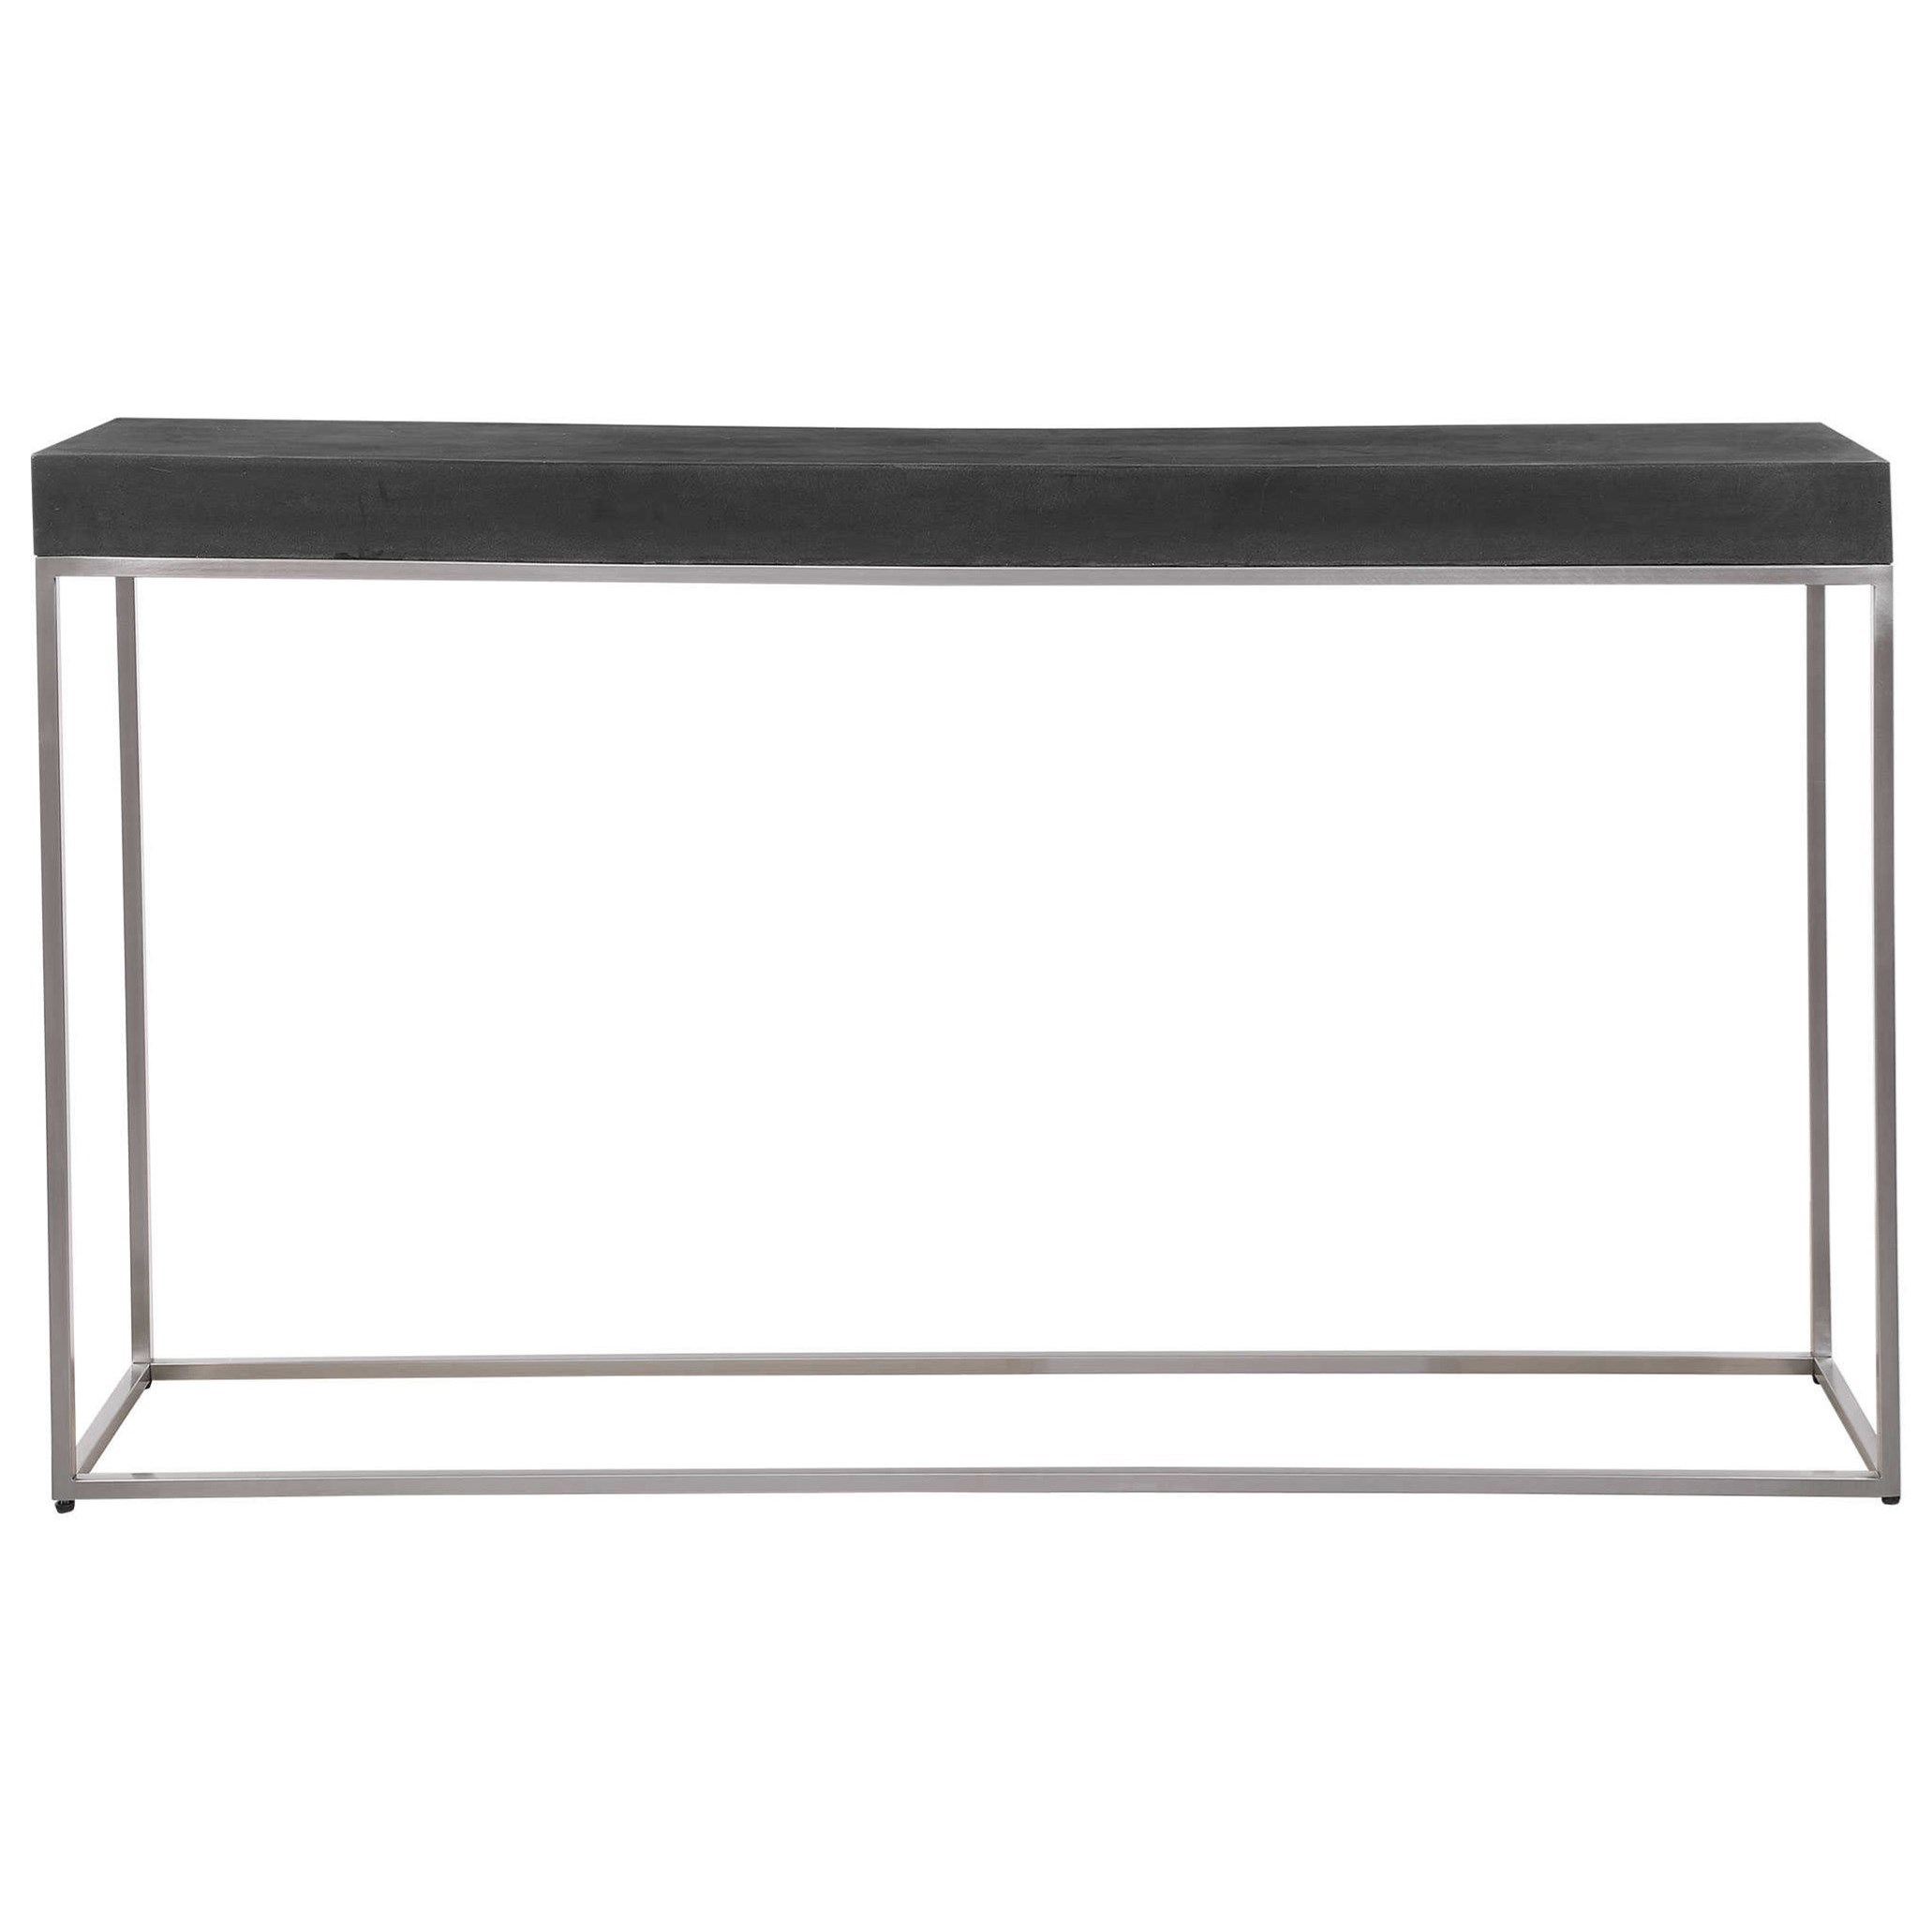 Accent Furniture - Occasional Tables Black Concrete Console Table by Uttermost at Upper Room Home Furnishings